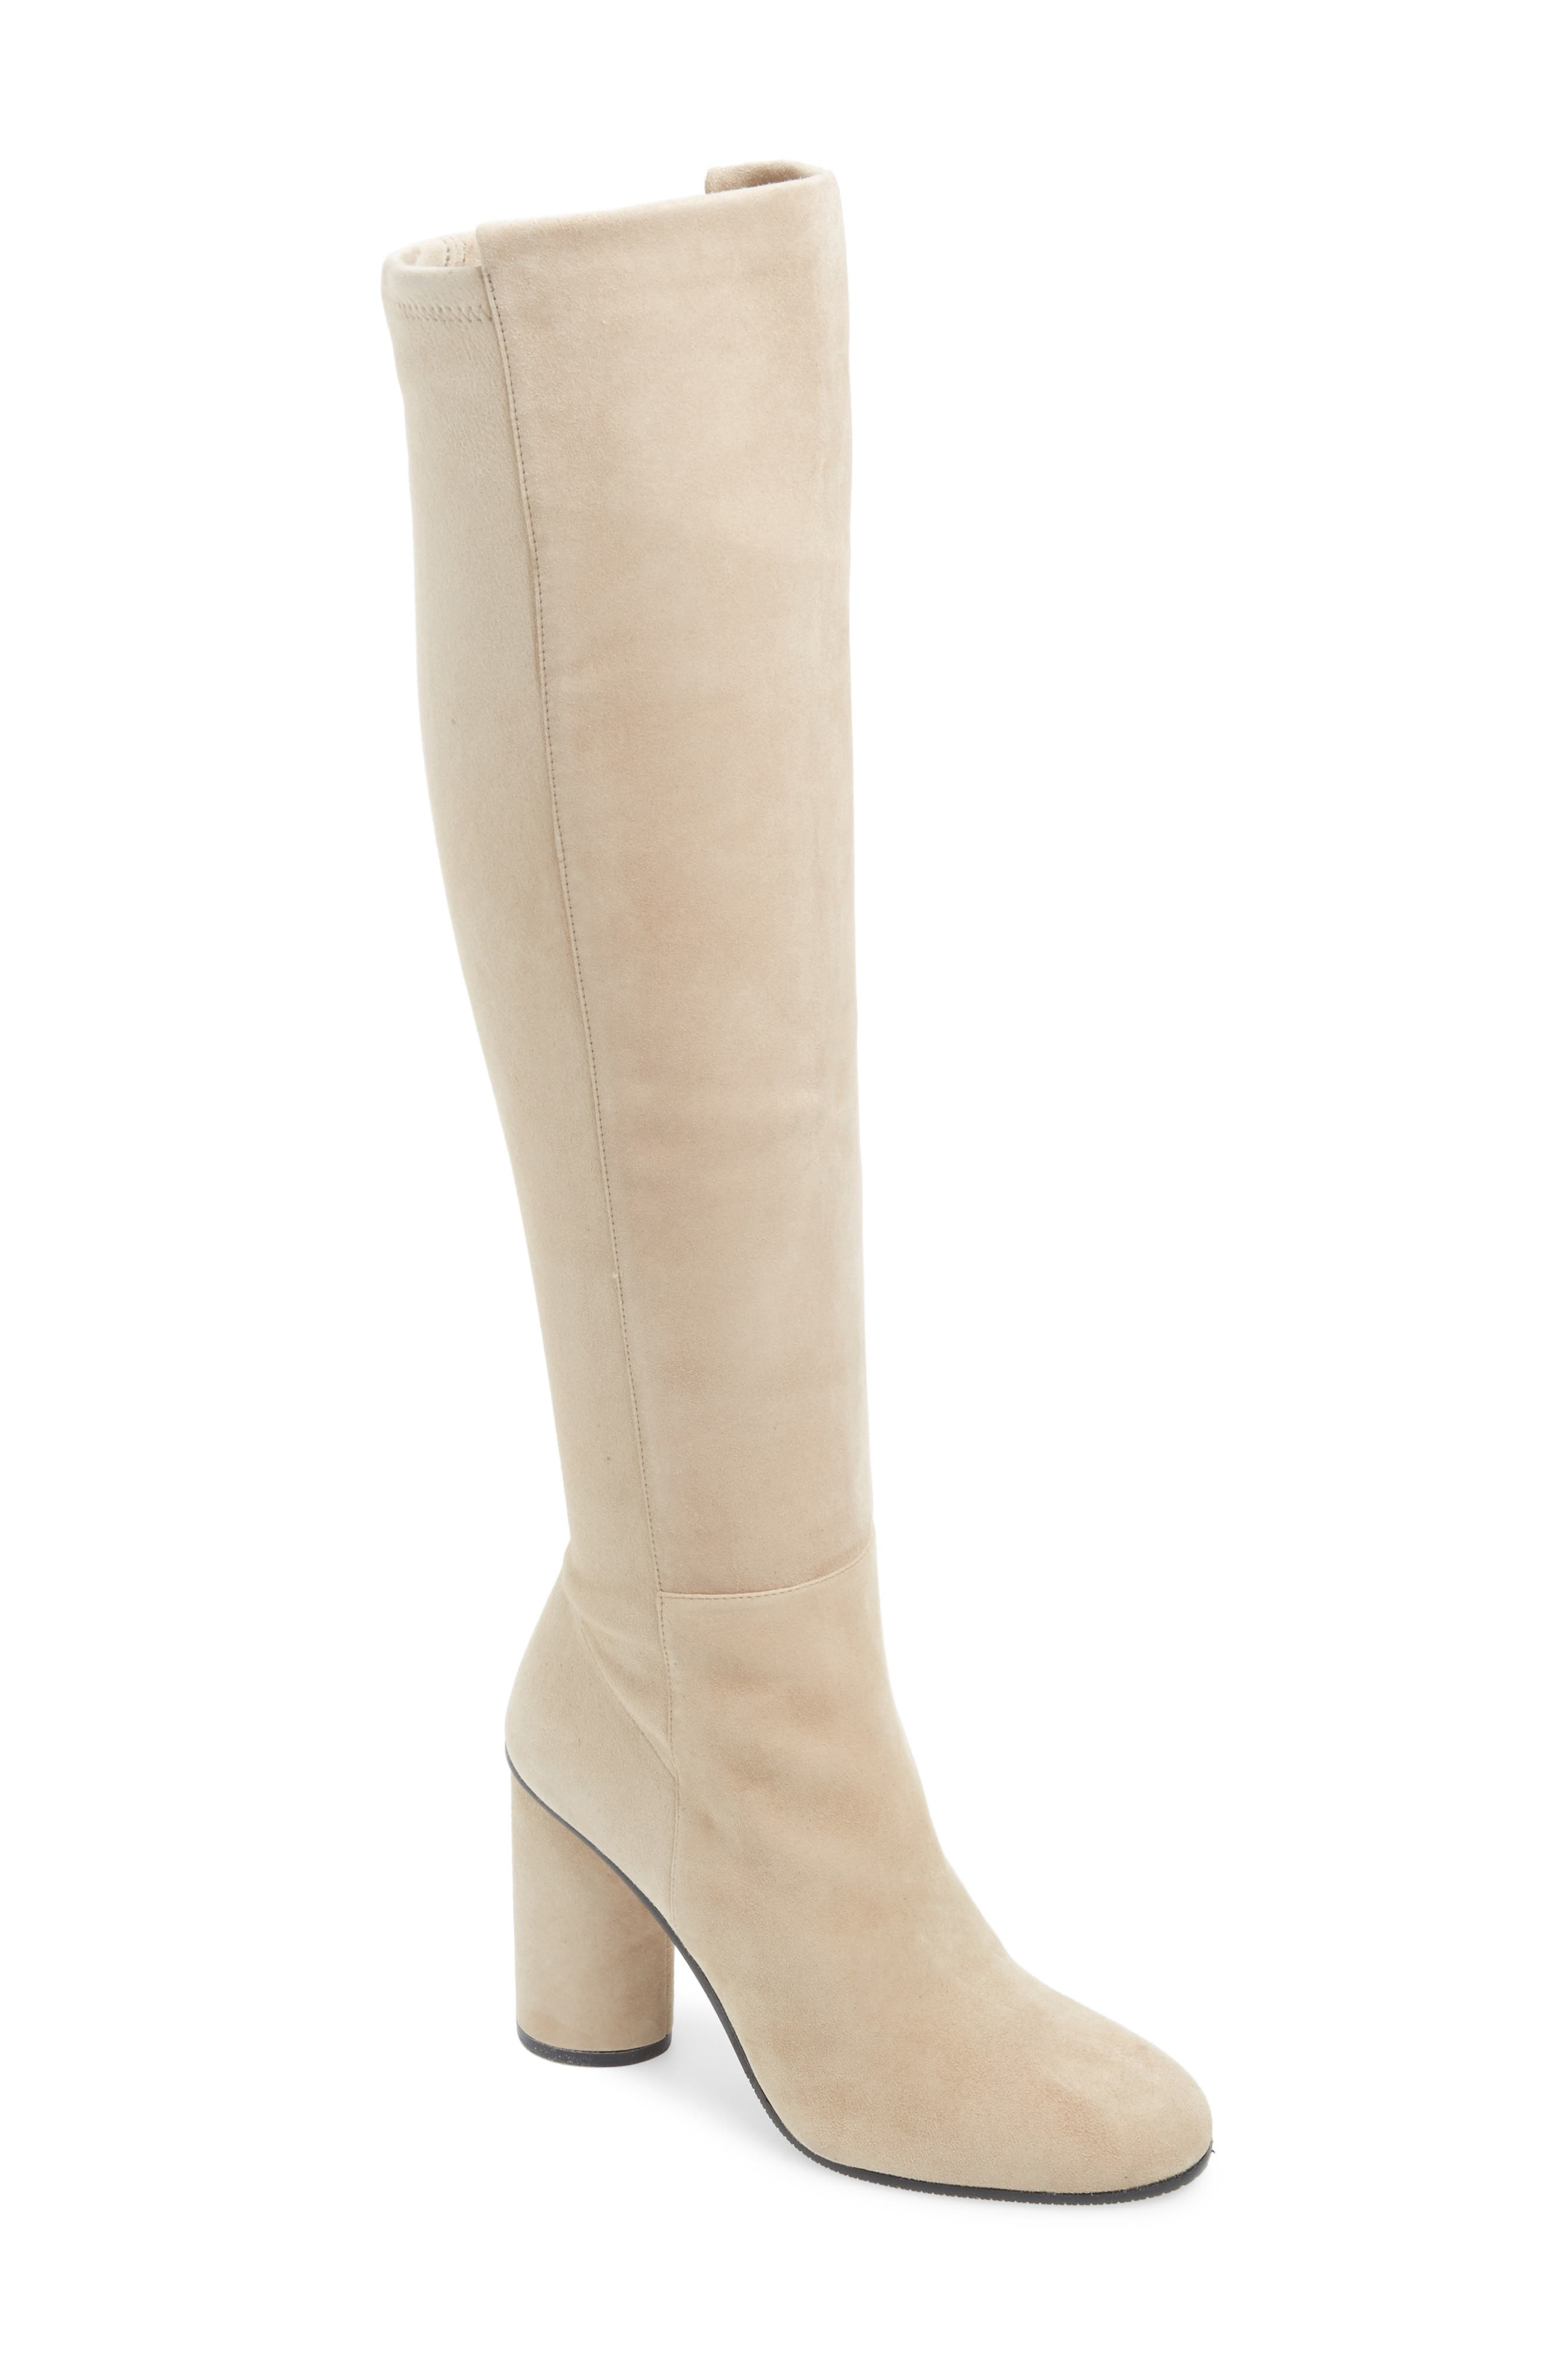 Eloise Over the Knee Boot, Main, color, 270